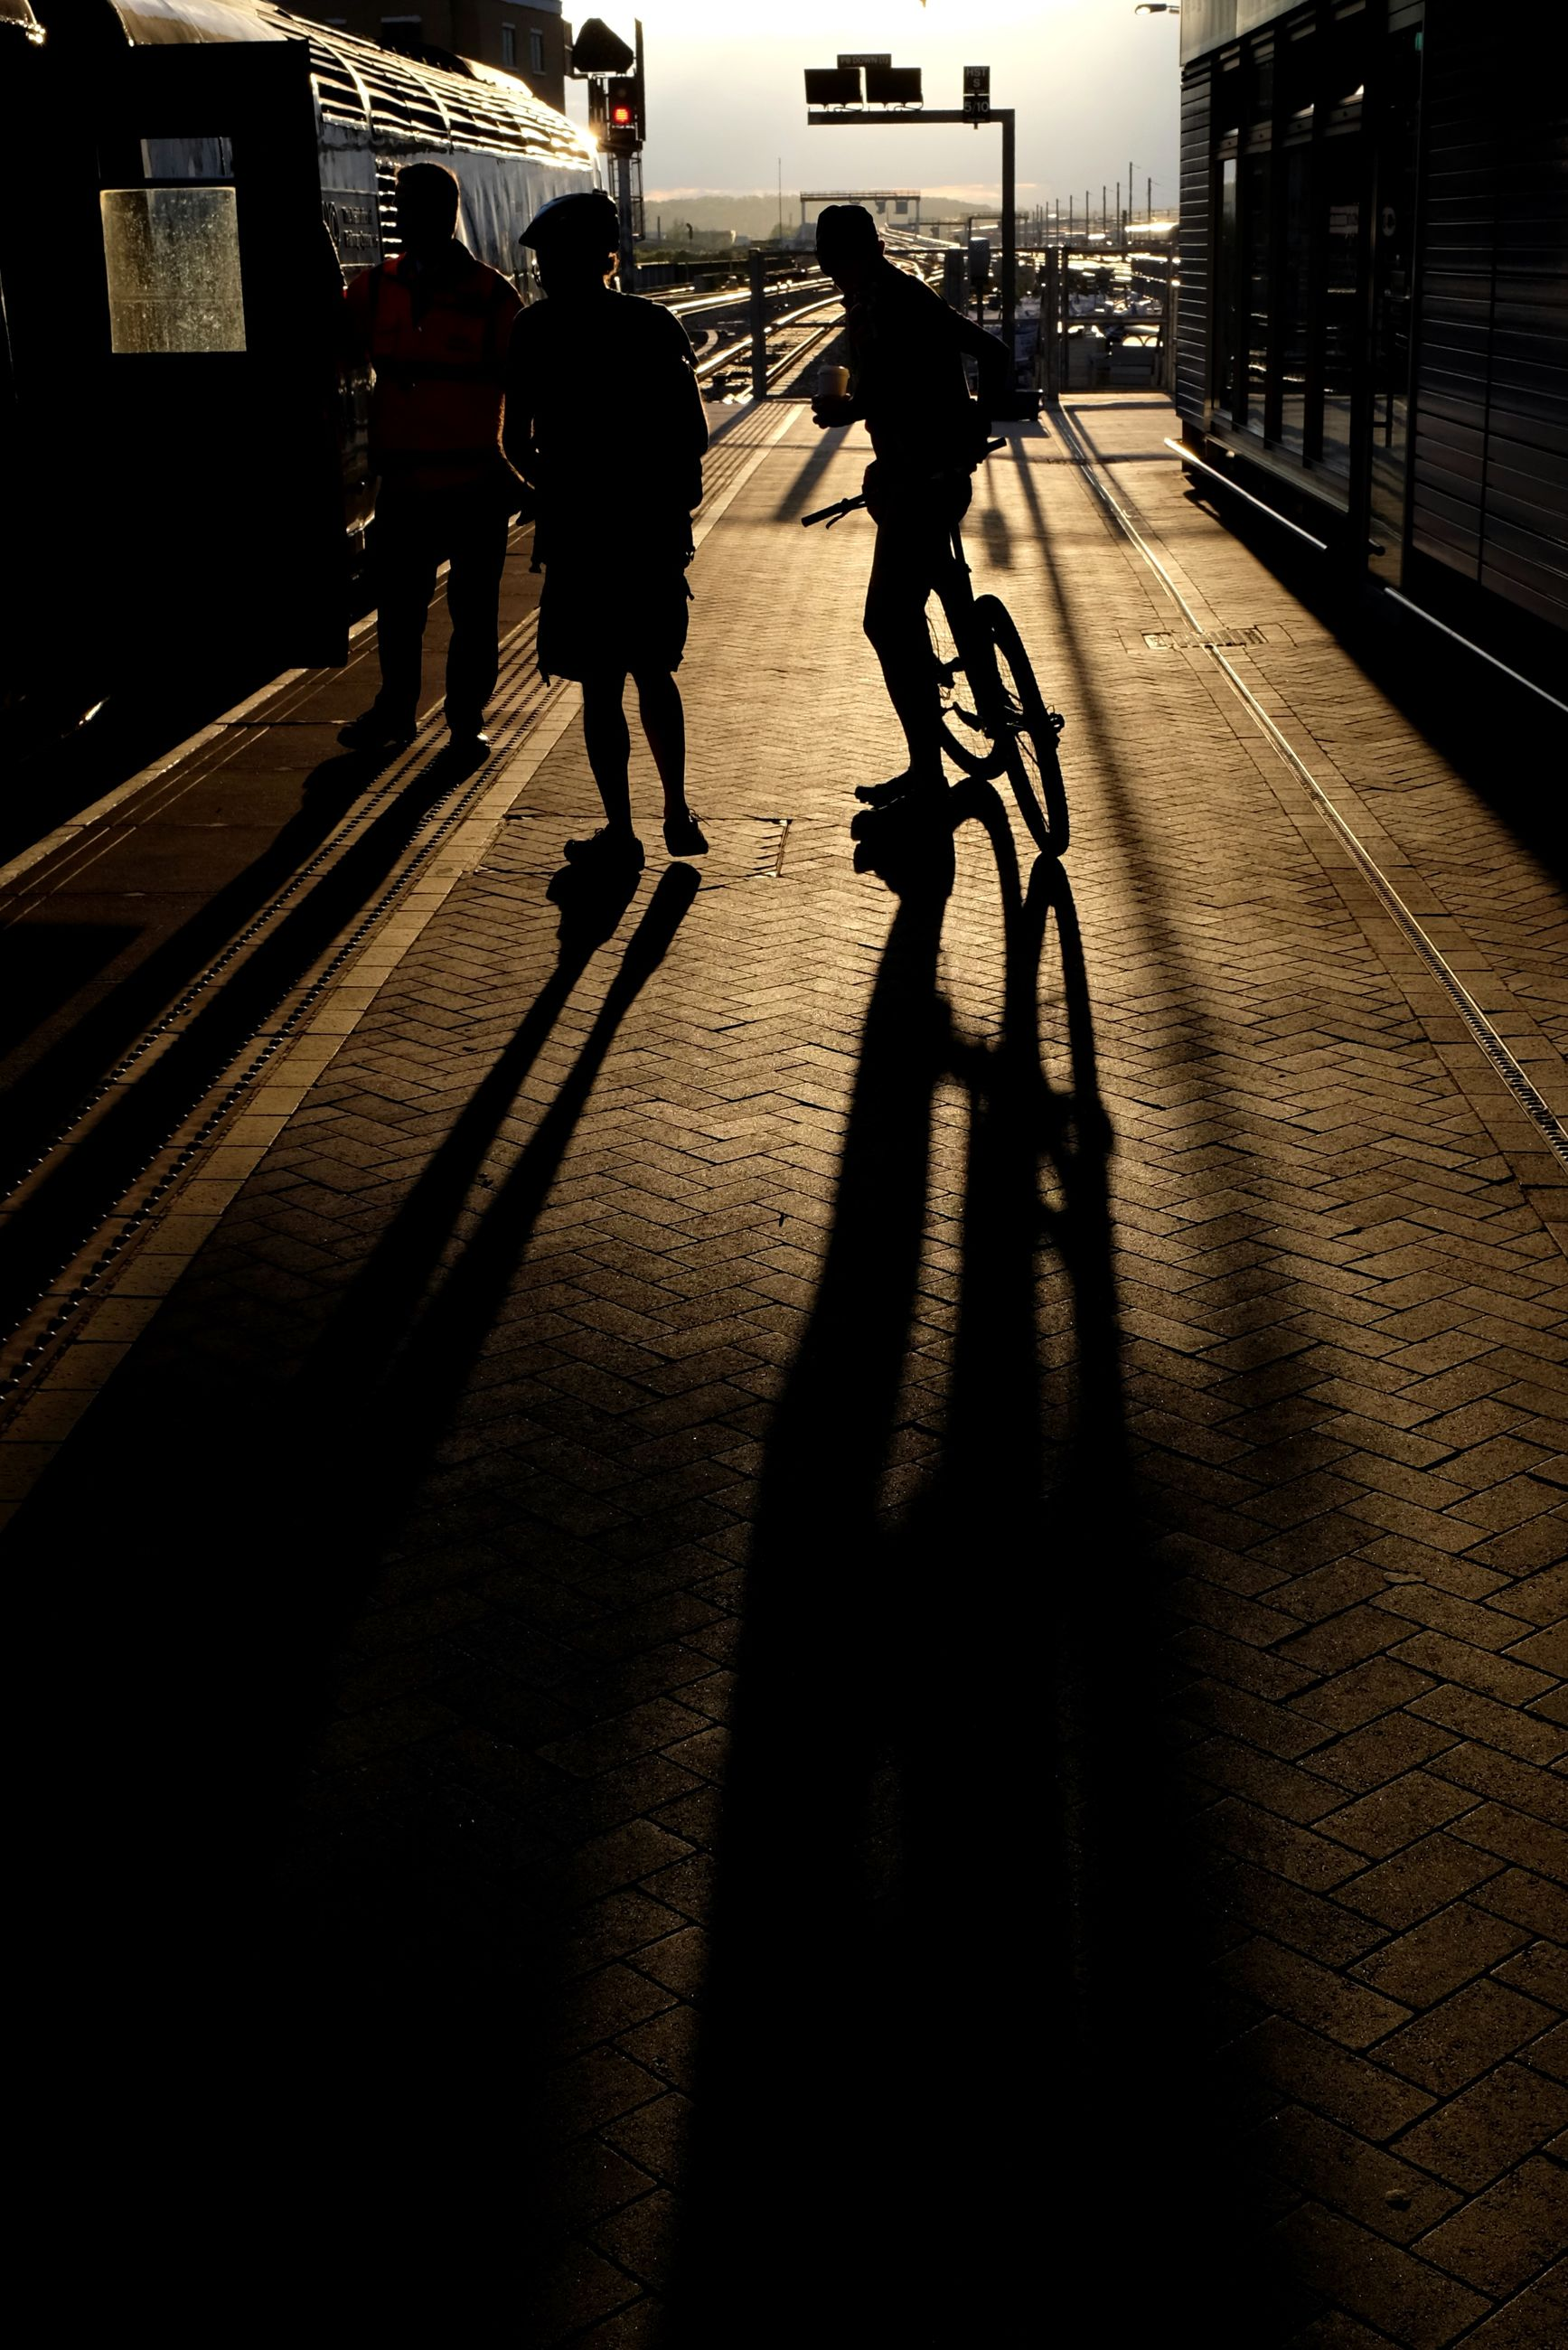 street, walking, men, lifestyles, city life, city, shadow, person, transportation, full length, road, city street, building exterior, sunlight, leisure activity, zebra crossing, road marking, built structure, on the move